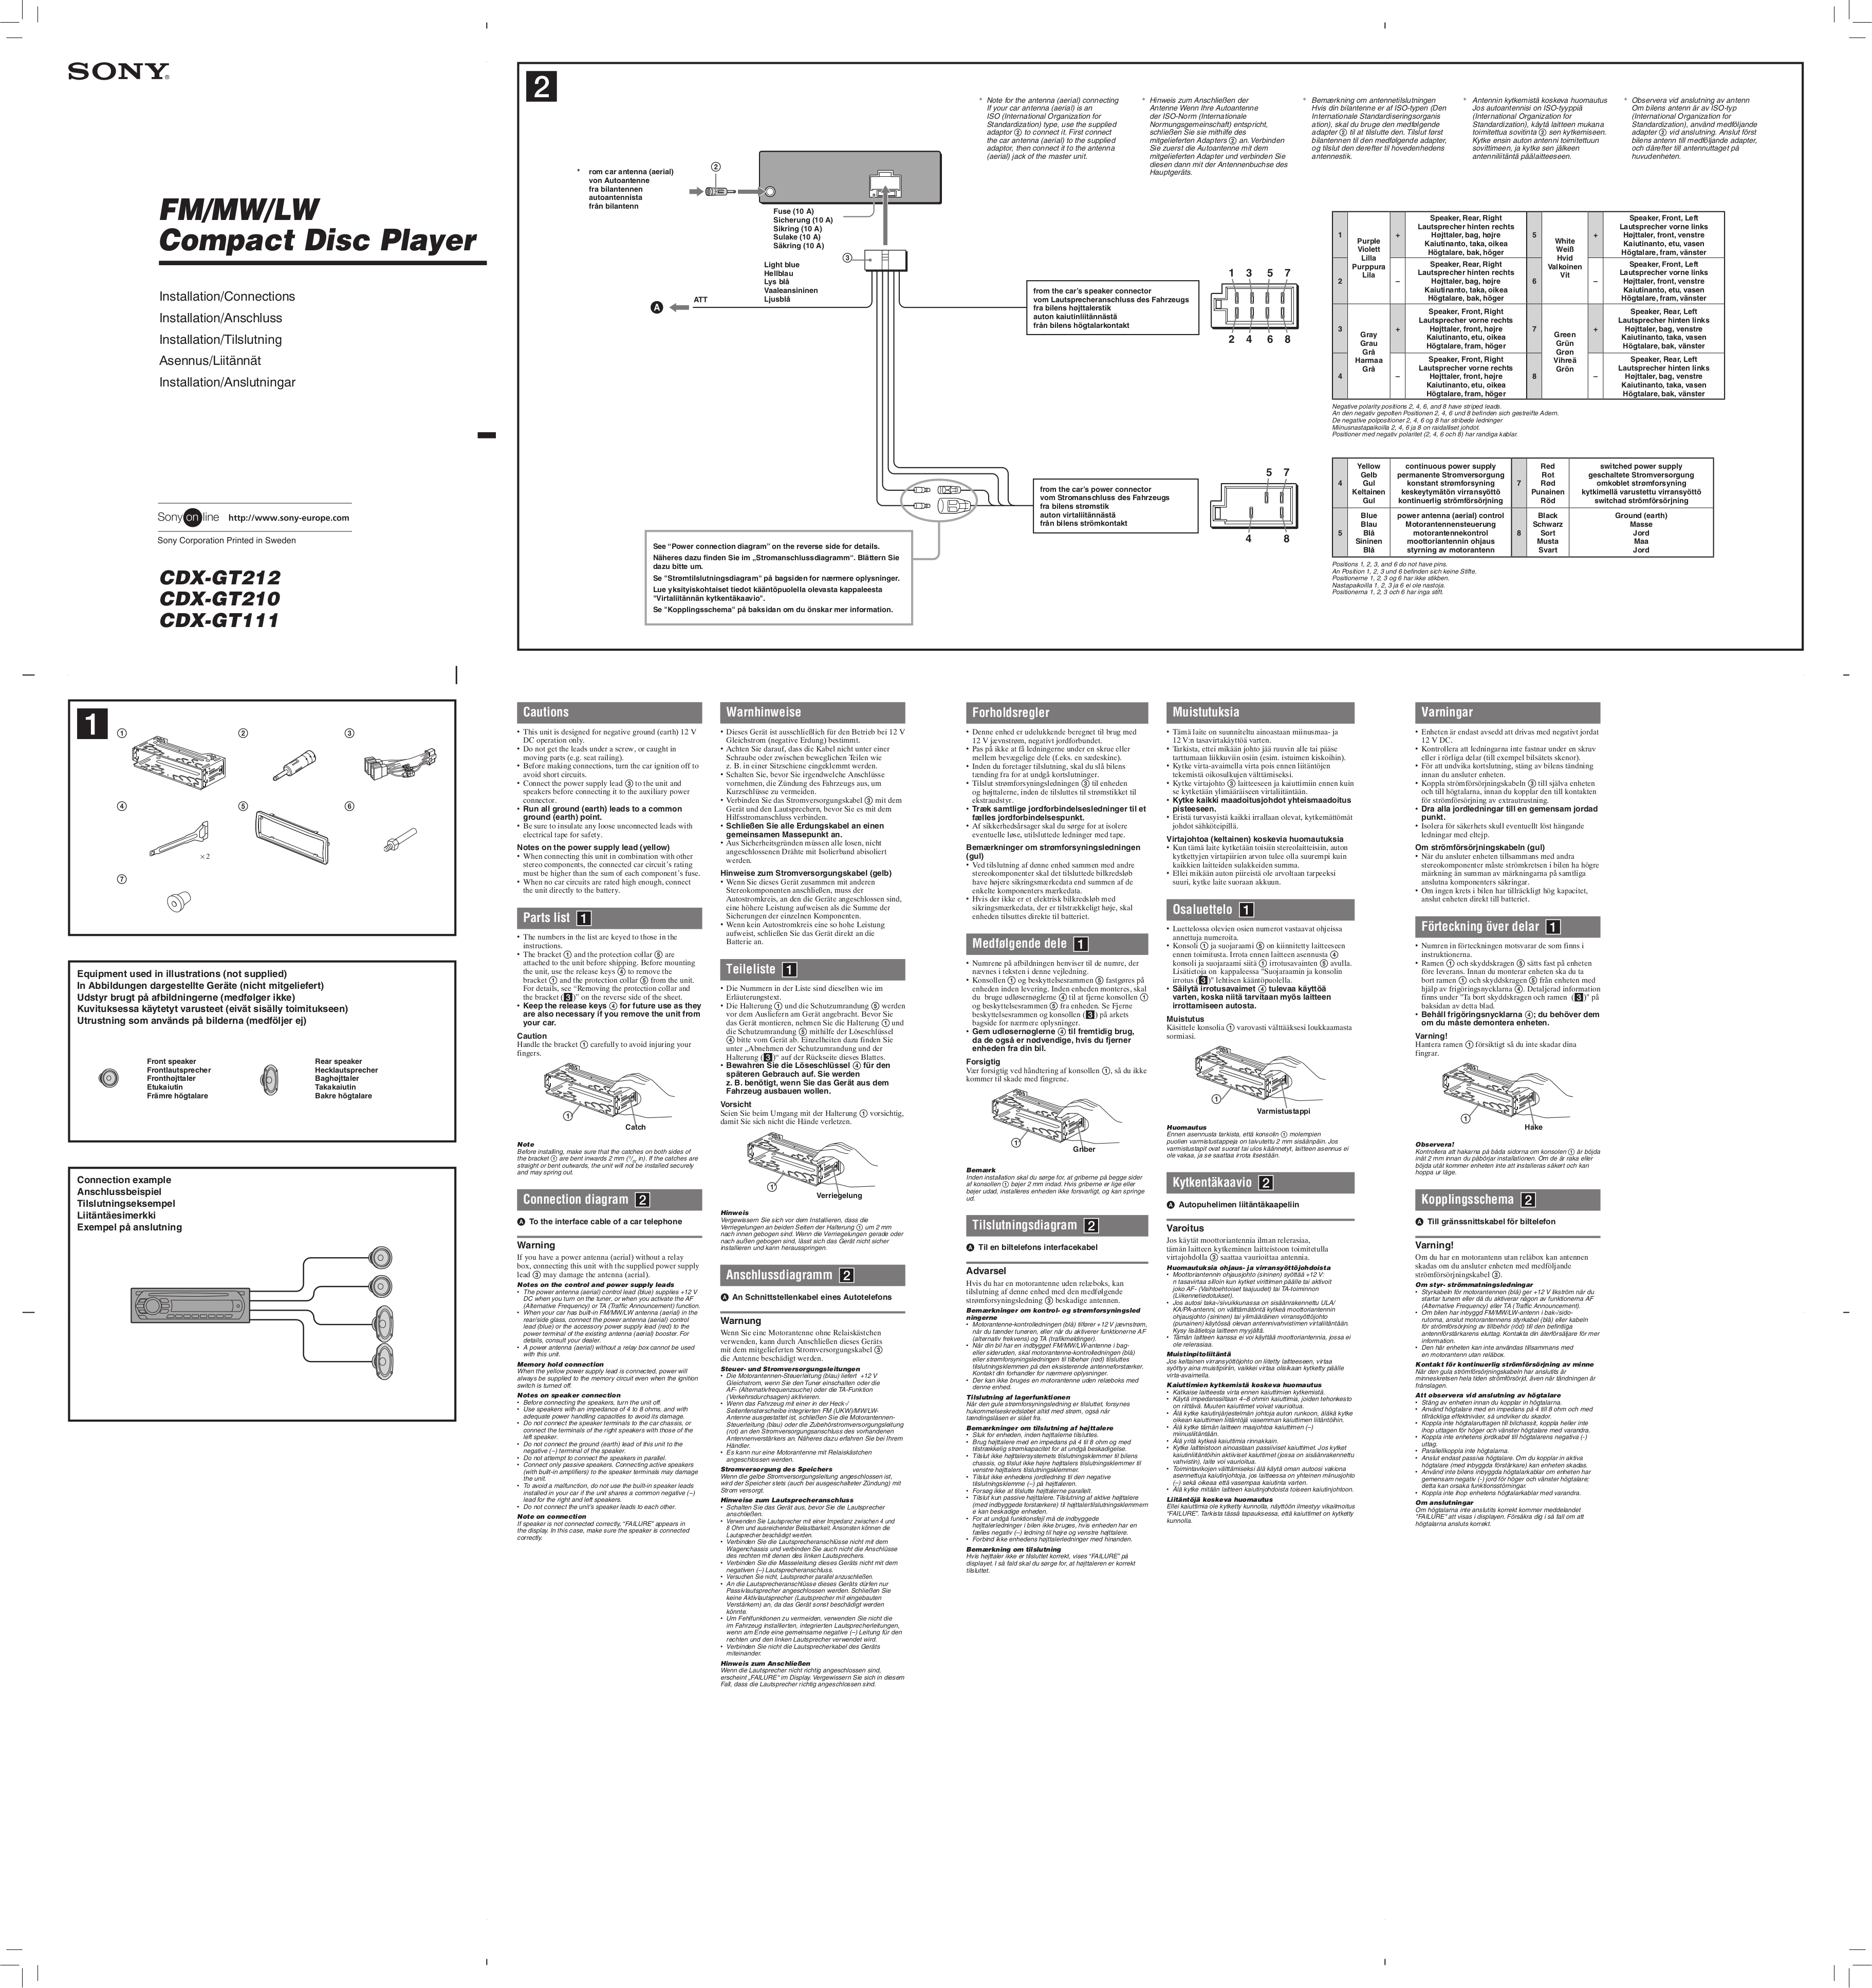 CDXGT 111_210_212.pdf 0 download free pdf for sony cdx gt210 car receiver manual sony cdx gt200 wiring diagram at crackthecode.co